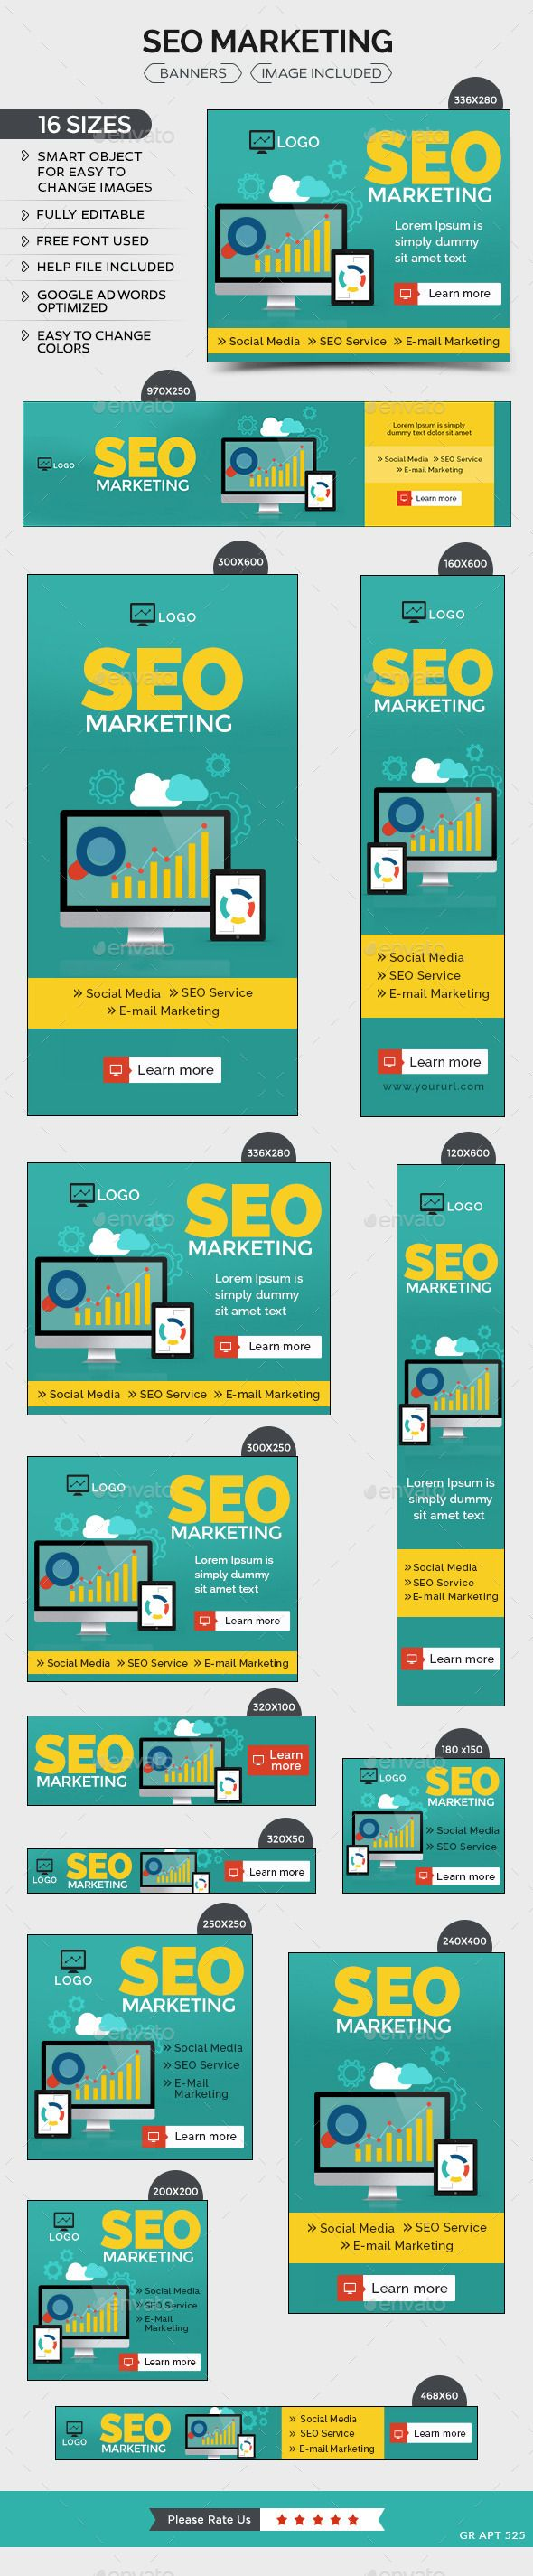 SEO Marketing Banners - Banners & Ads Web Template PSD. Download here: http://graphicriver.net/item/seo-marketing-banners/11007263?s_rank=1766&ref=yinkira